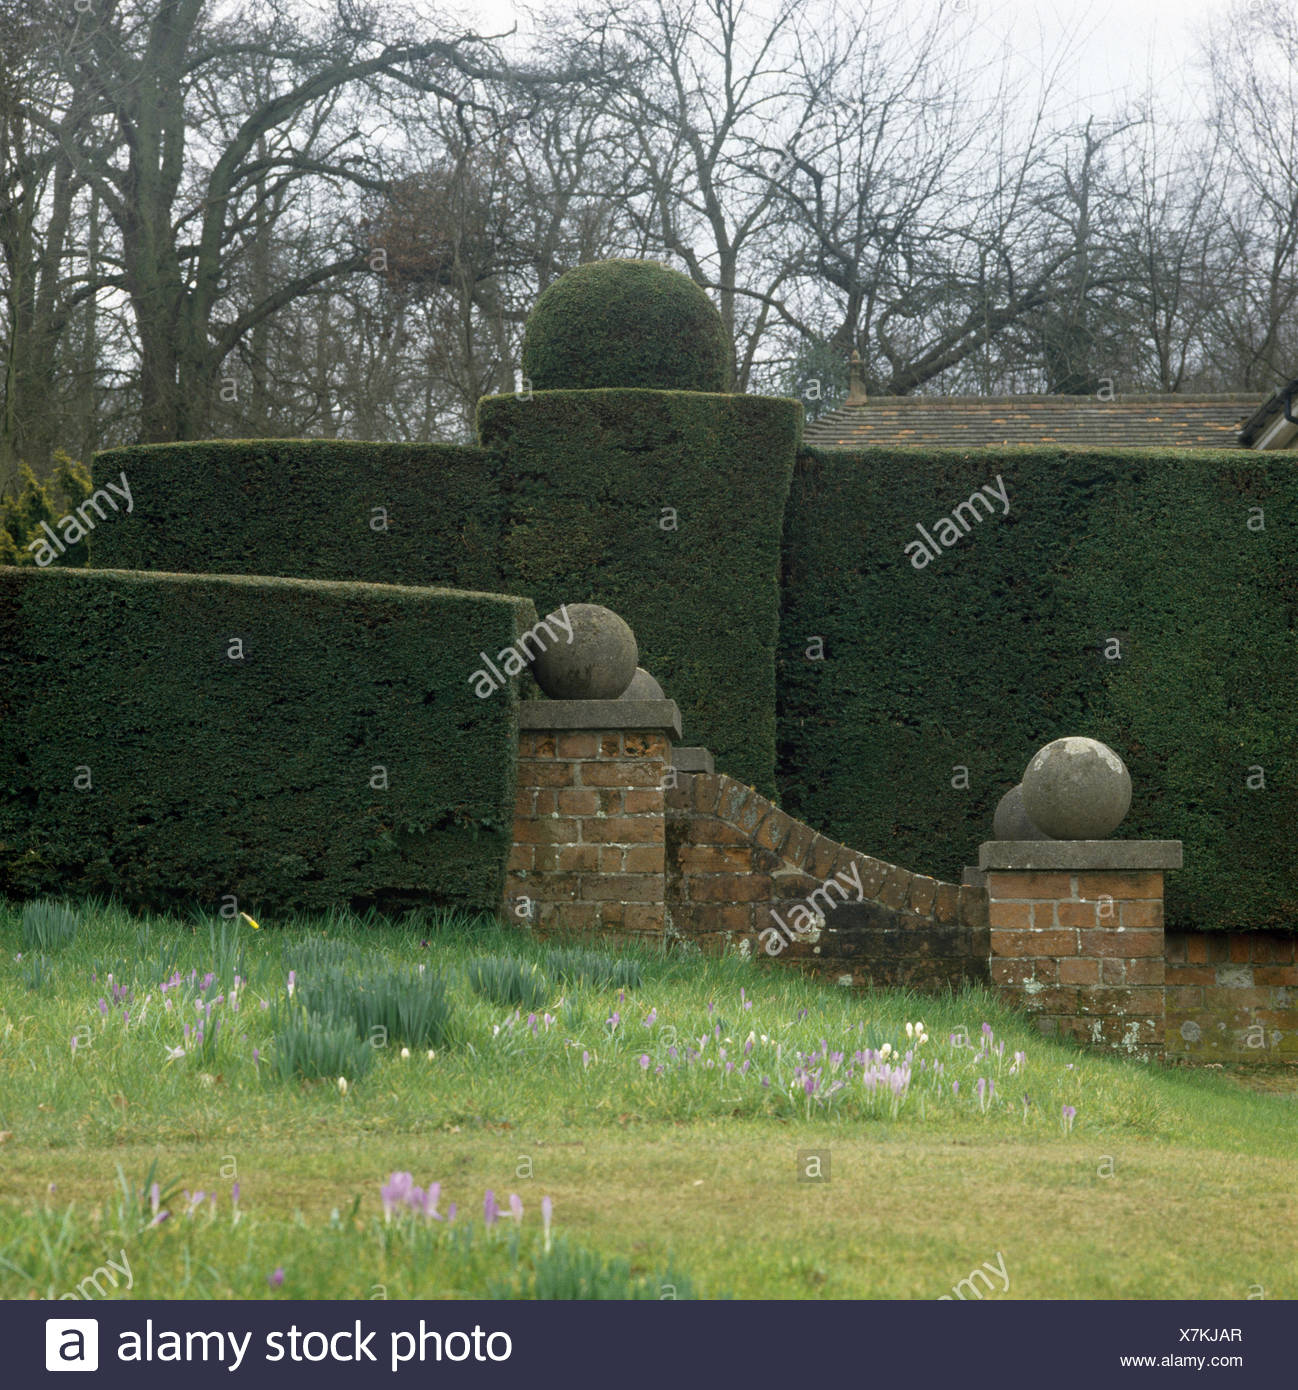 Stone balls stock photos stone balls stock images alamy stone balls on low wall in front of a tall well clipped hedge in a workwithnaturefo